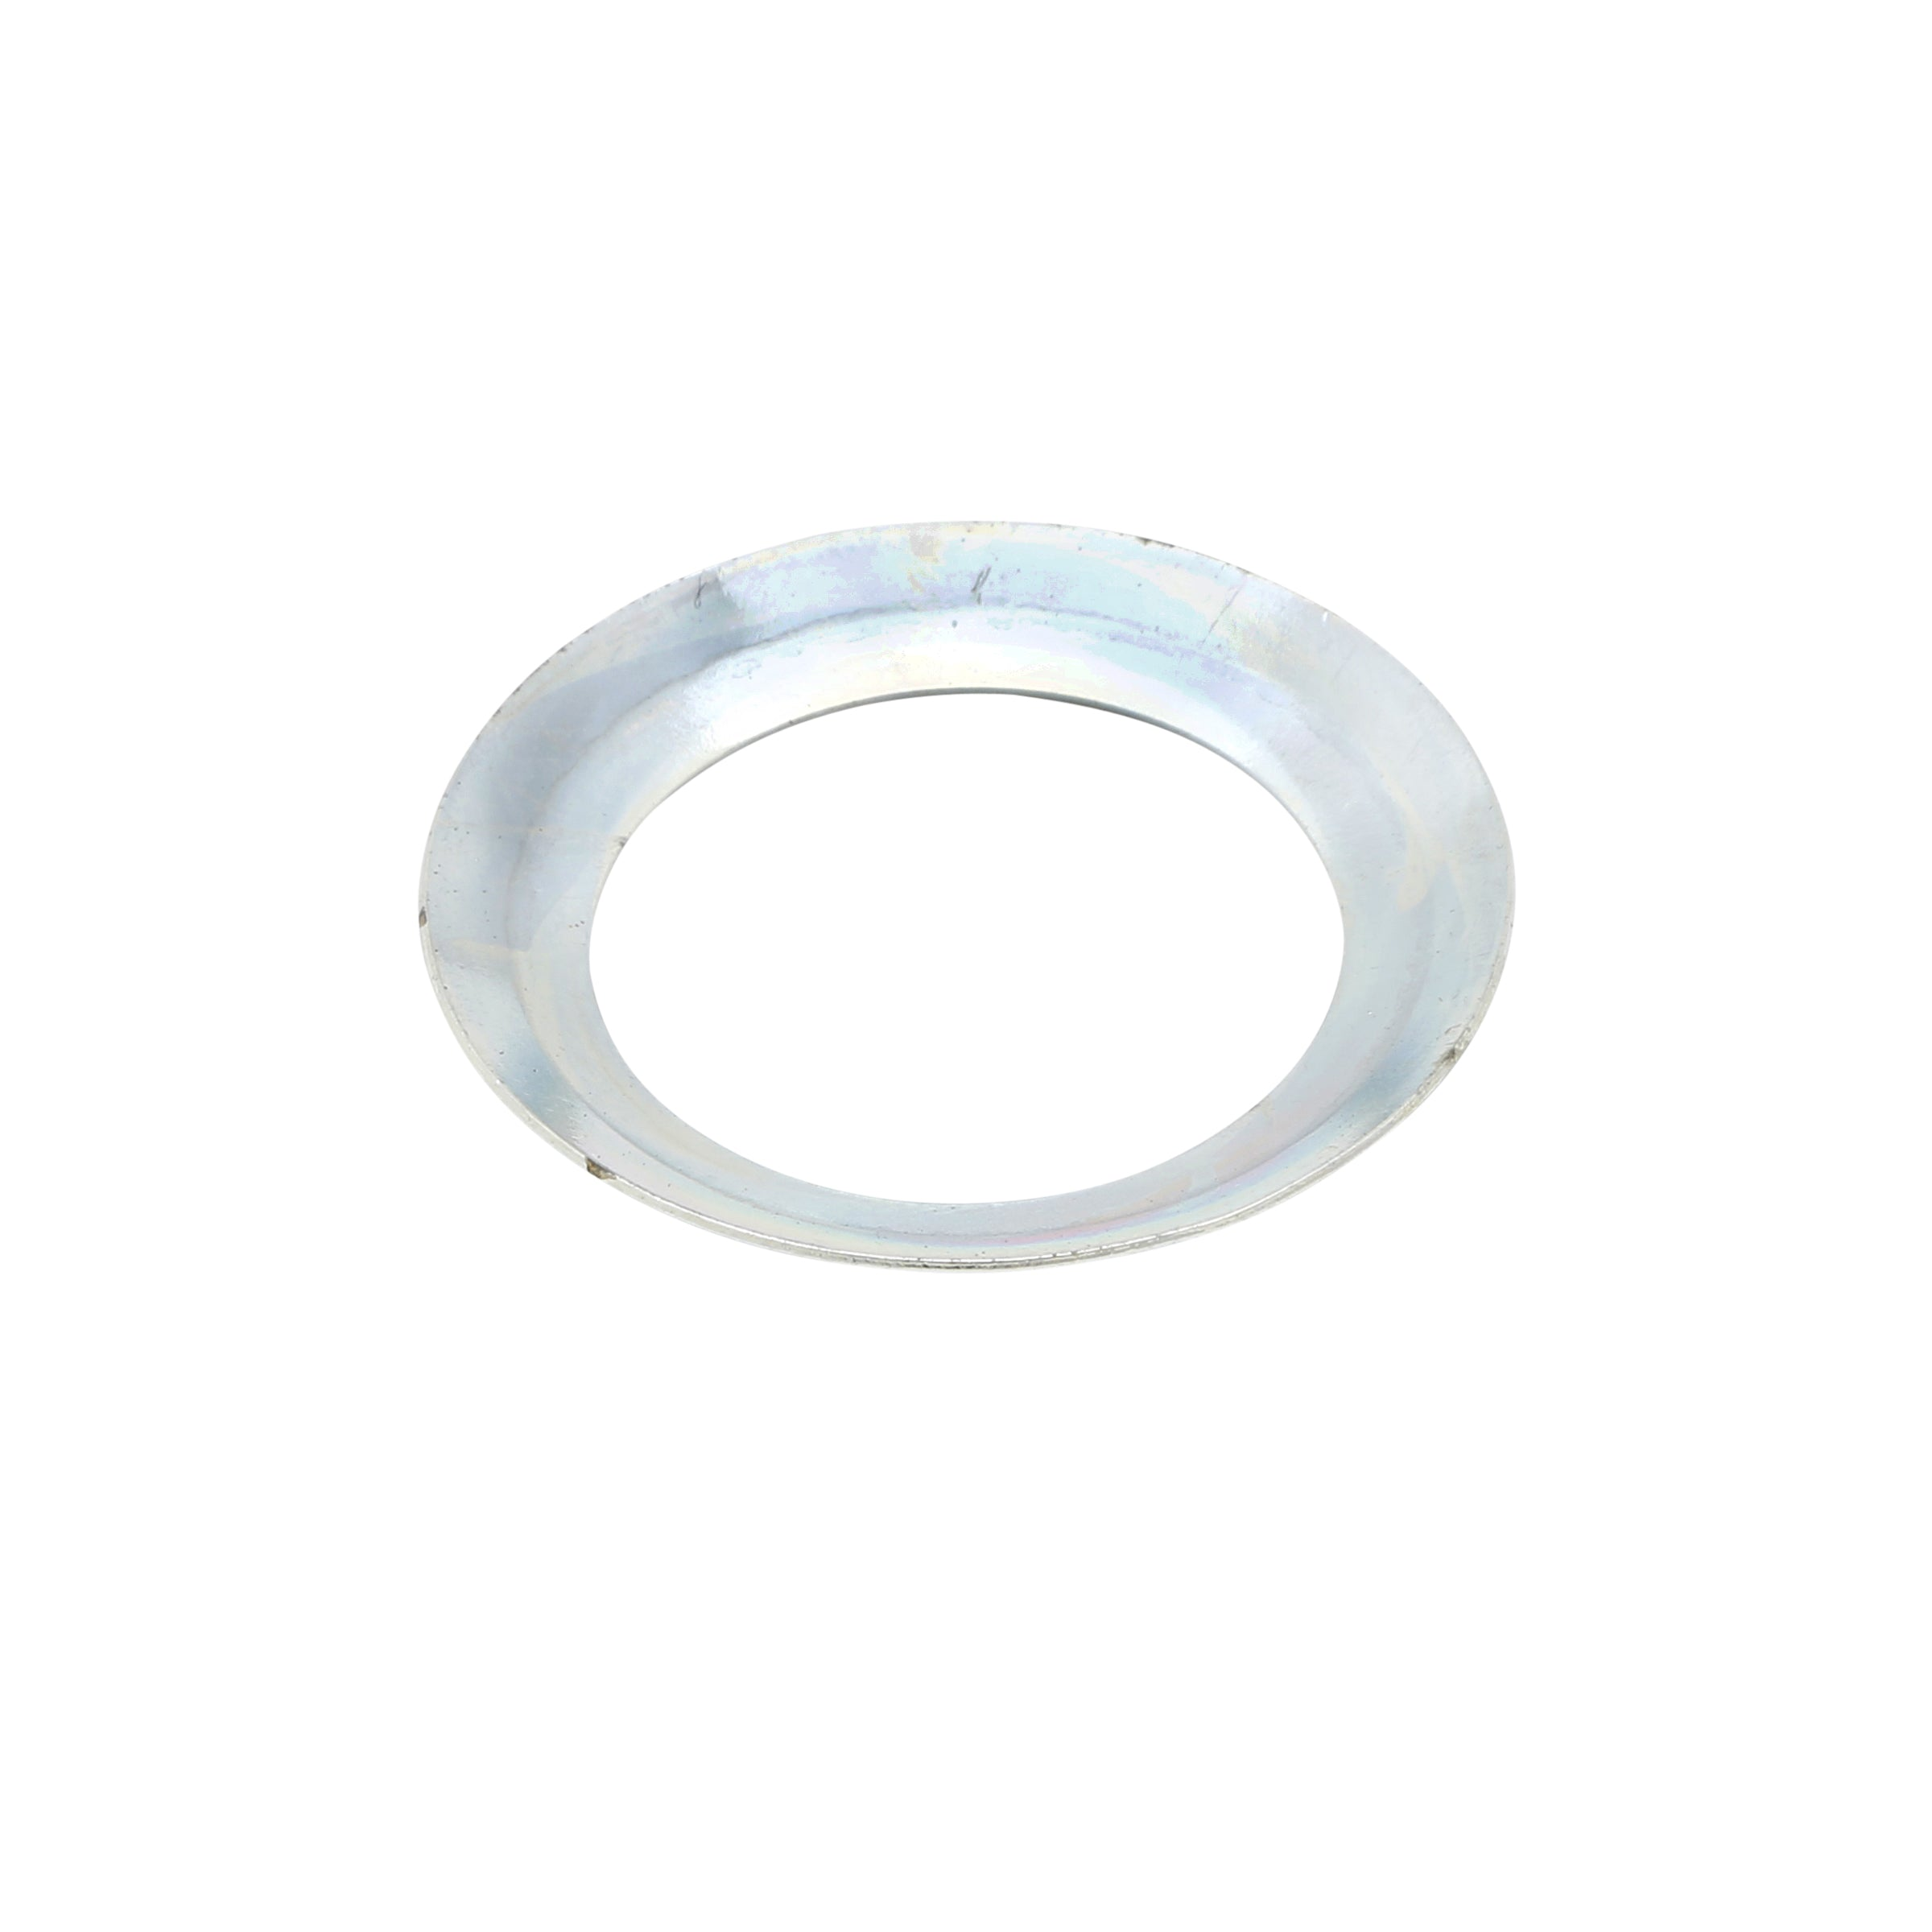 Generator Bearing Felt Retainer • 1929-31 Model A Ford